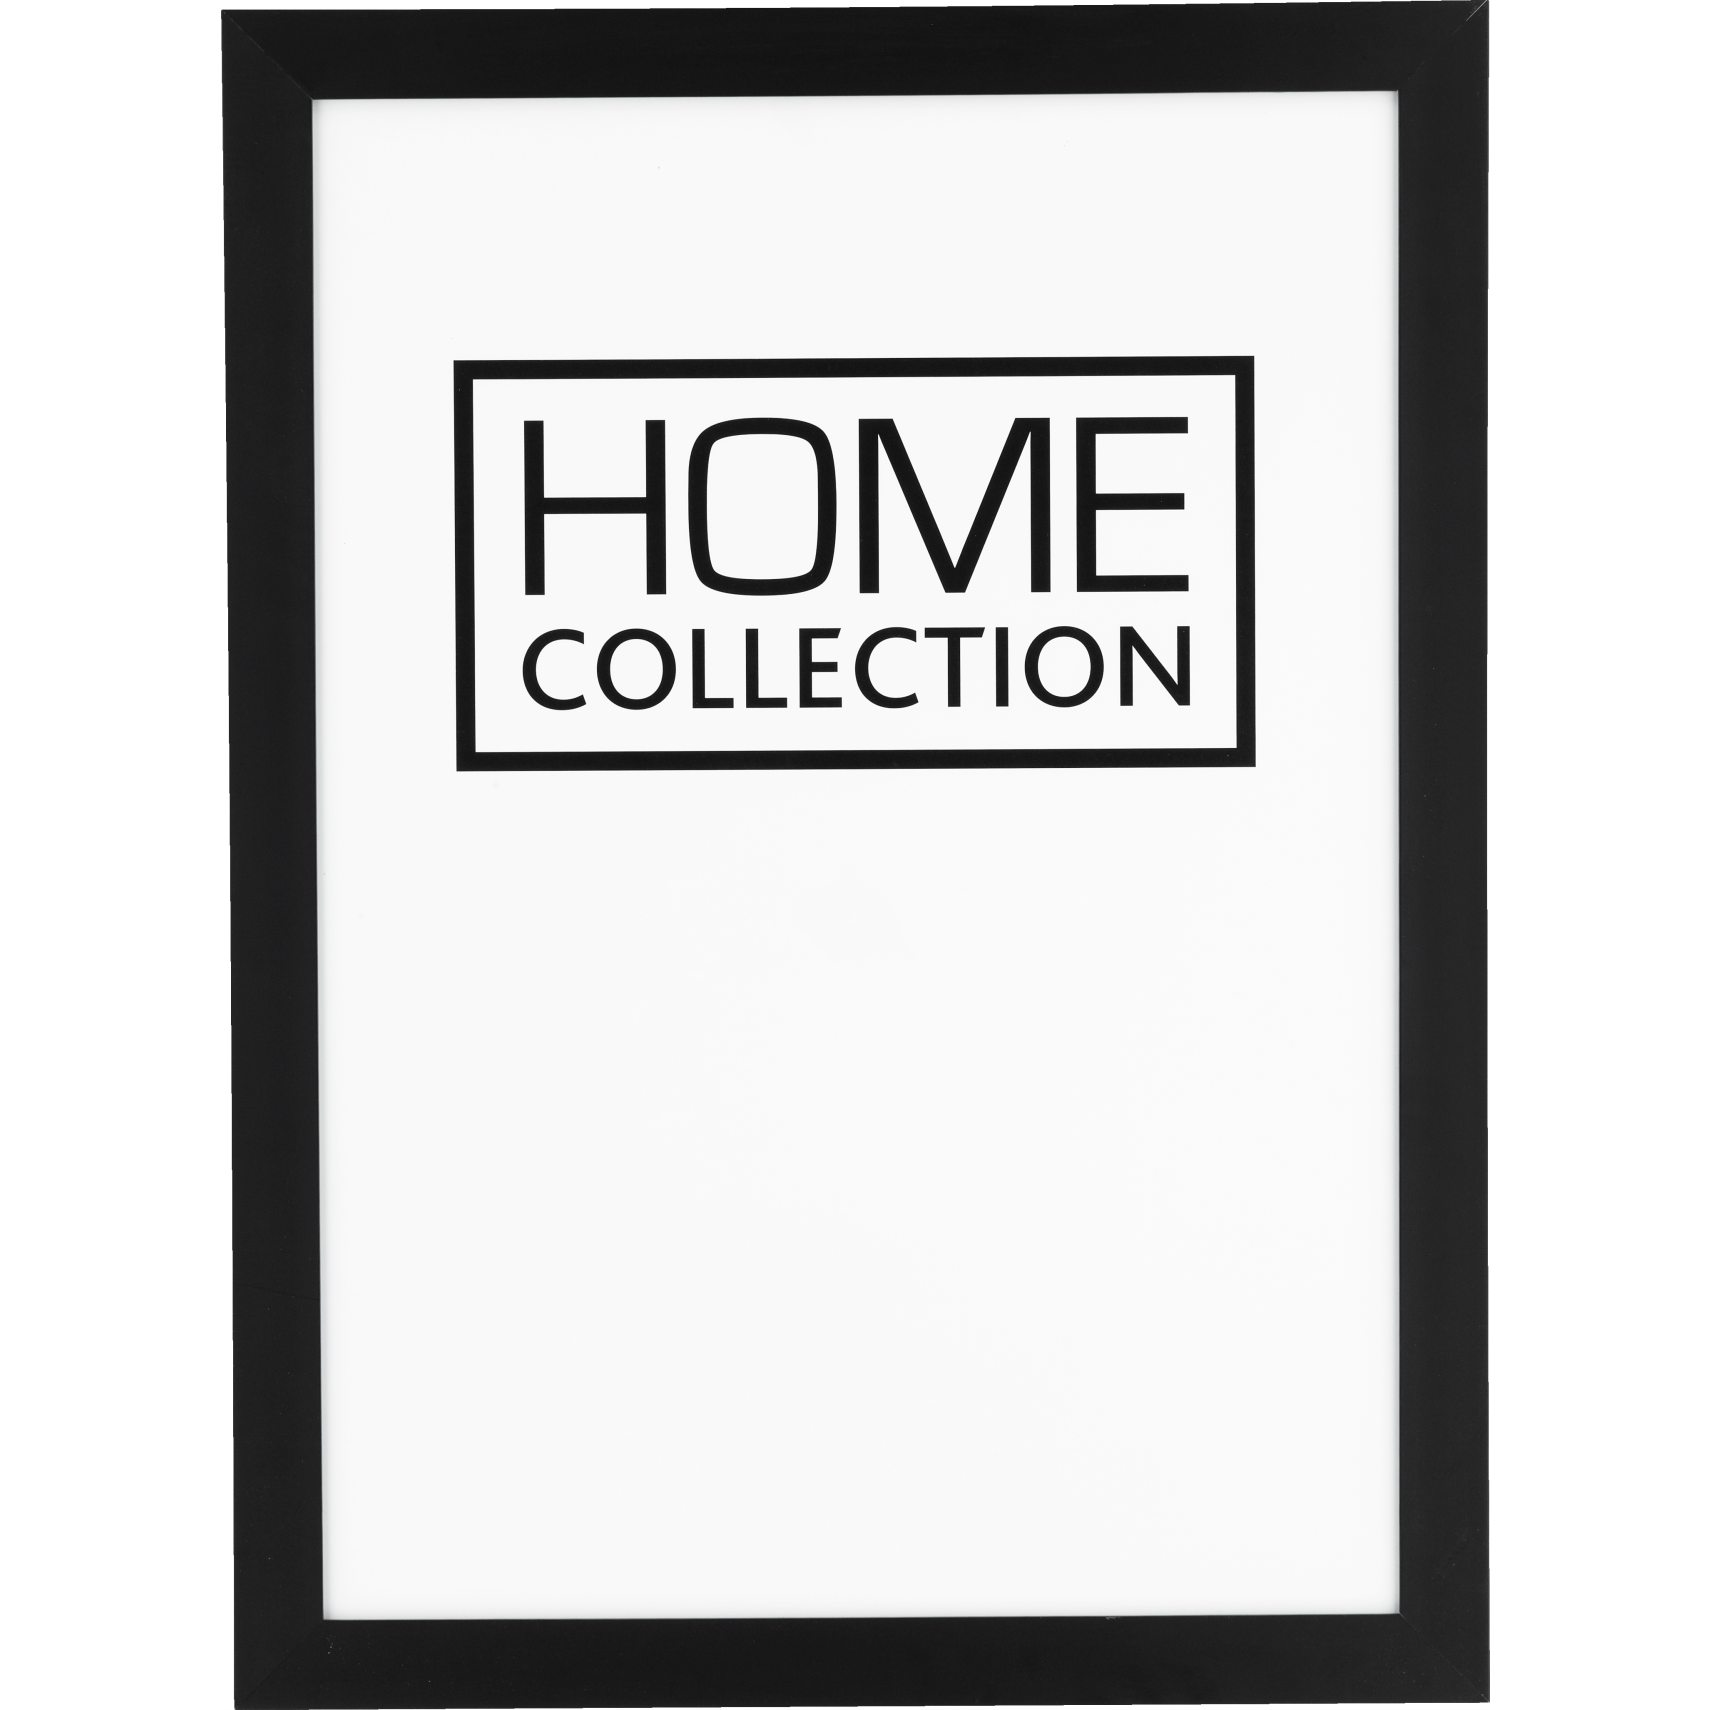 HOME COLLECTION Ramme 40 x 50 x 2 cm - Sort træramme